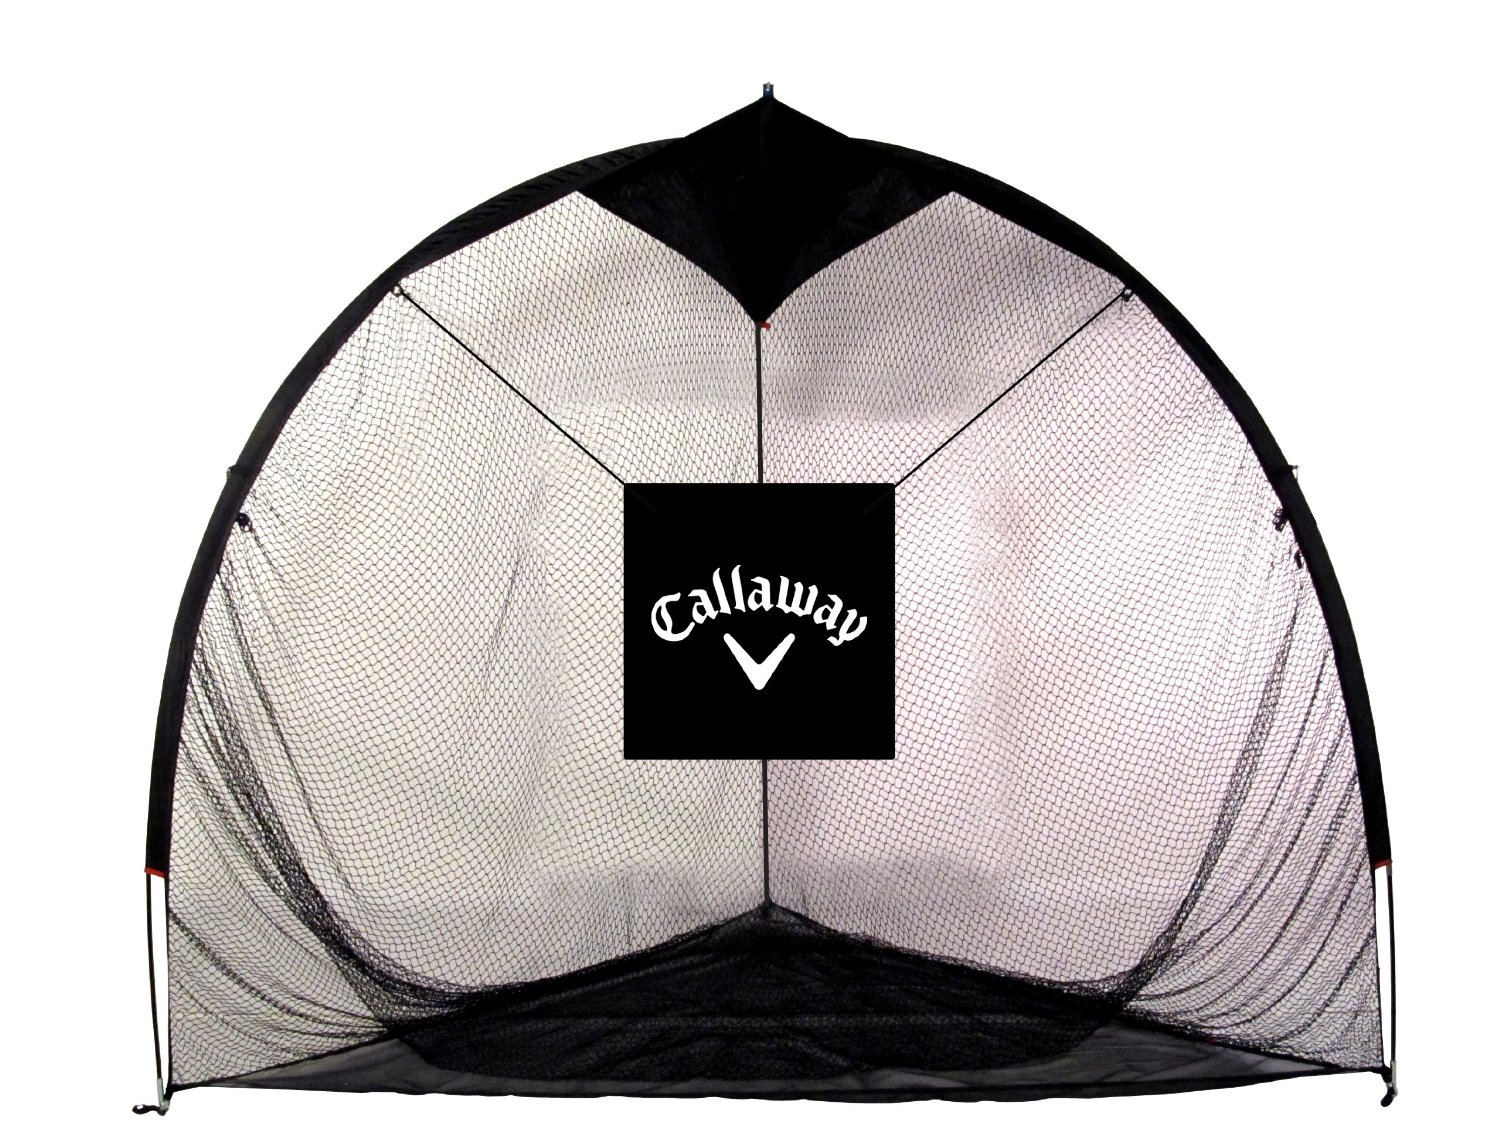 Callaway Tri-Ball Golf Hitting Nets